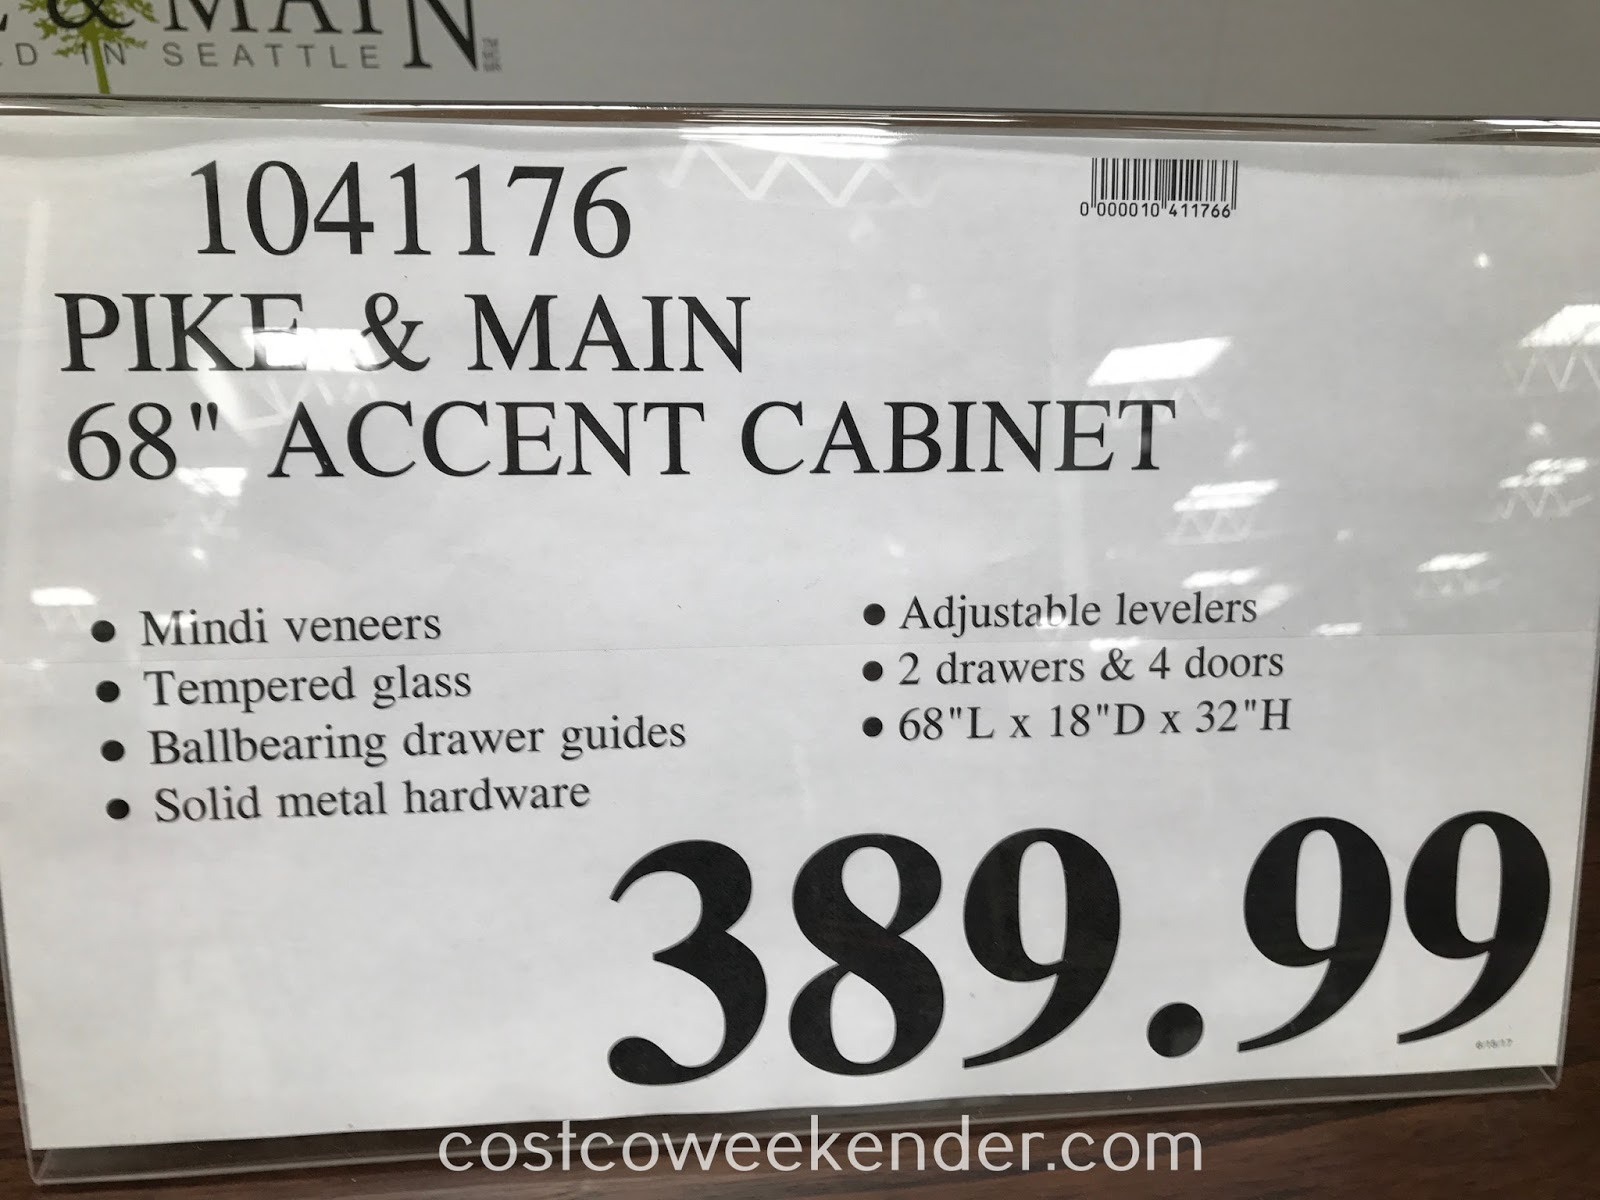 Deal for the Pike and Main Accent Console at Costco